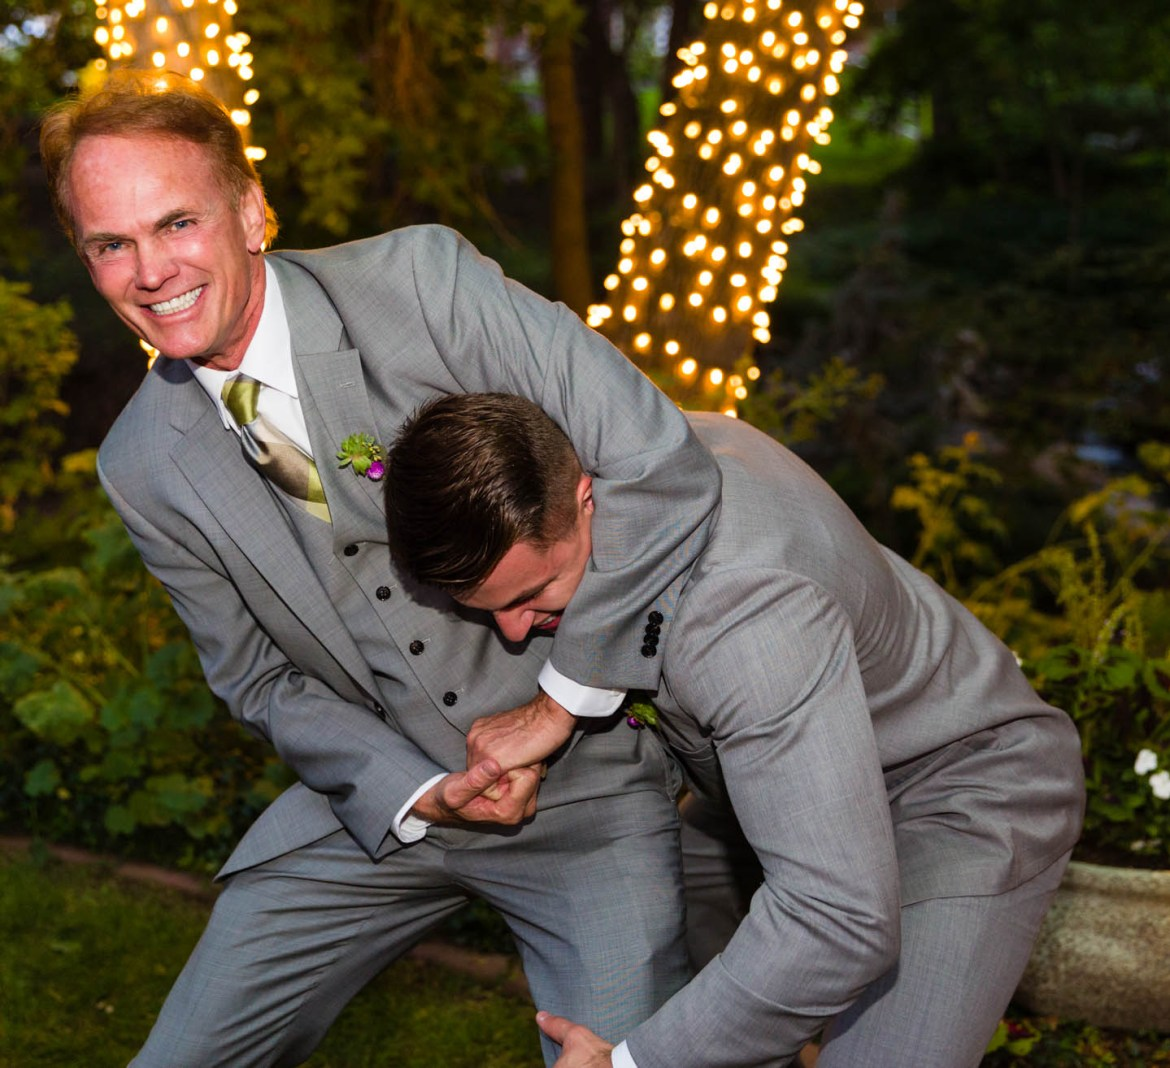 Bride's father puts the groom in a headlock